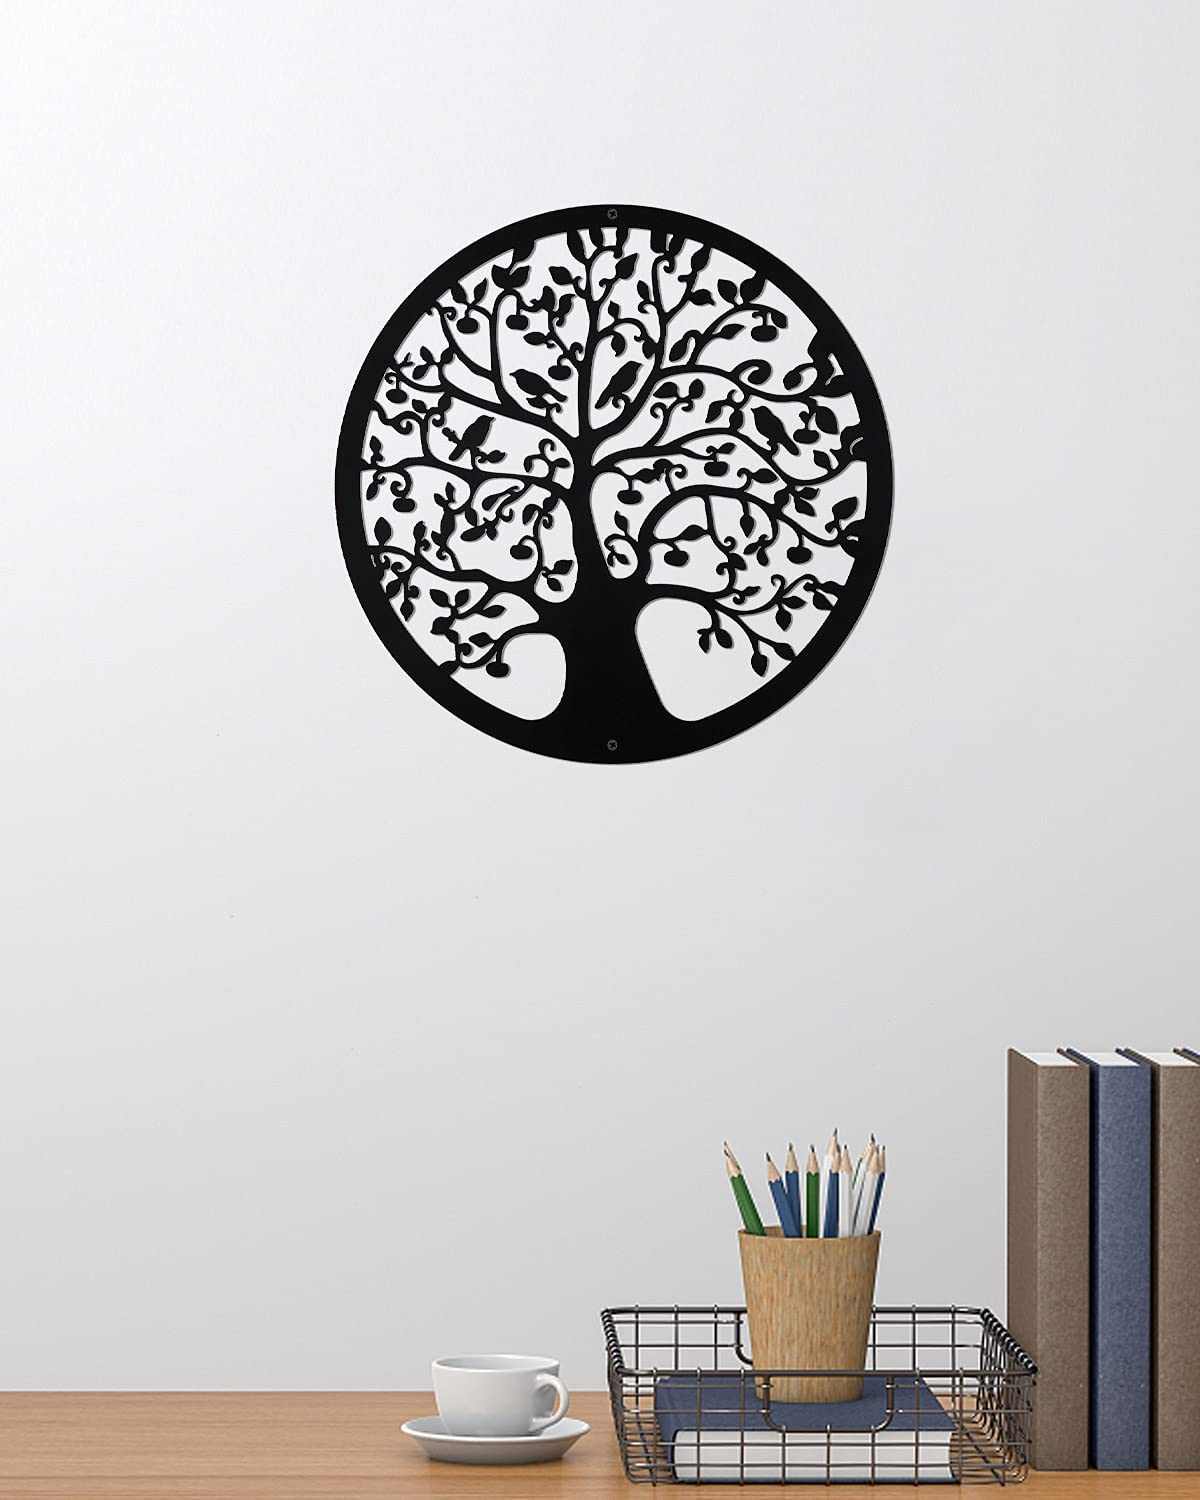 Metal Tree of Life Wall Hanging Art Sculpture 12 Inches Family Tree with Birds on Branches Round Contemporary Home Office Decor Cut Round Decorative Wall Hanging Garden Art Sculpture